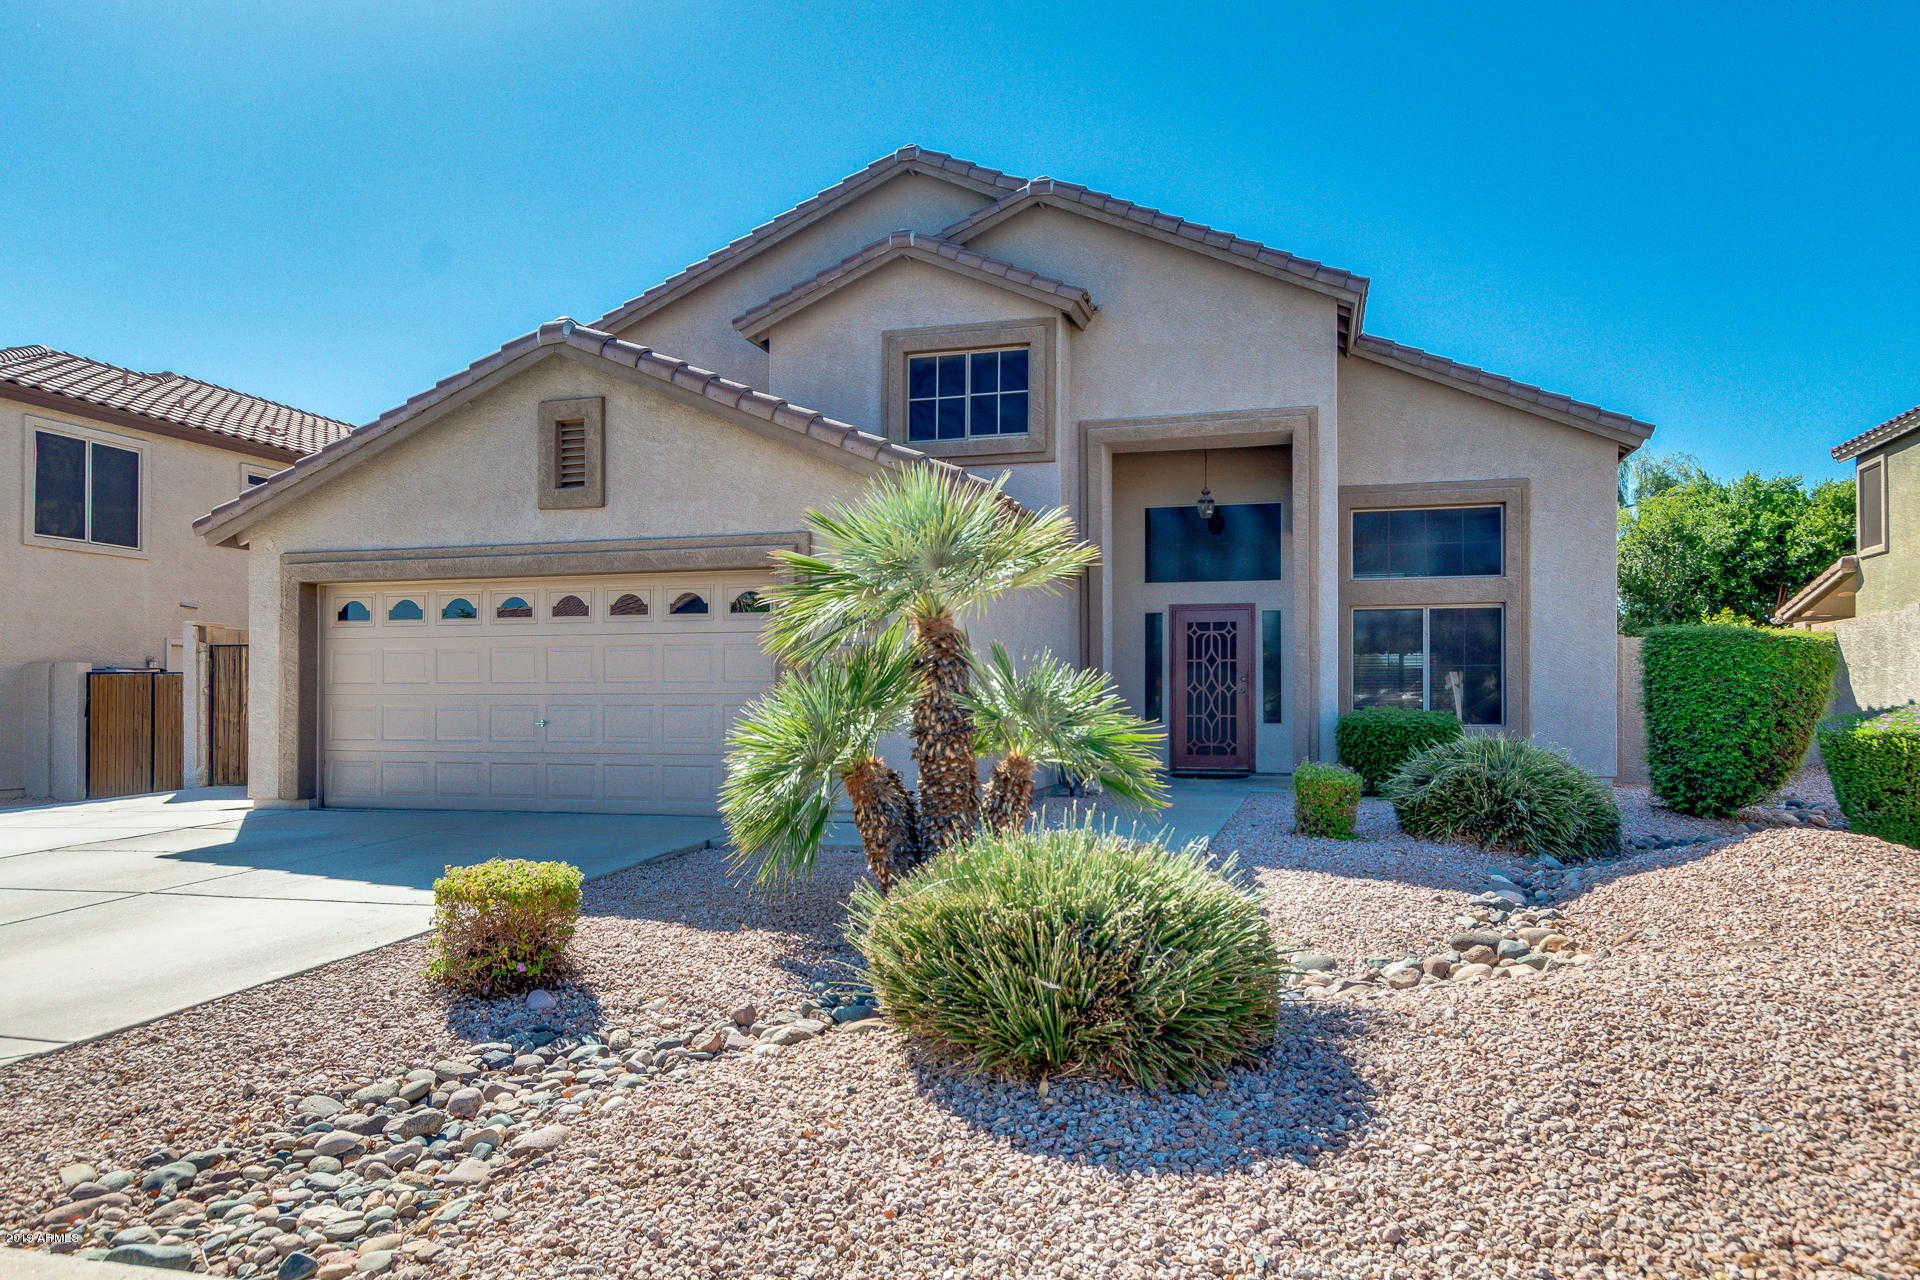 $349,500 - 4Br/3Ba - Home for Sale in Sienna 2, Glendale